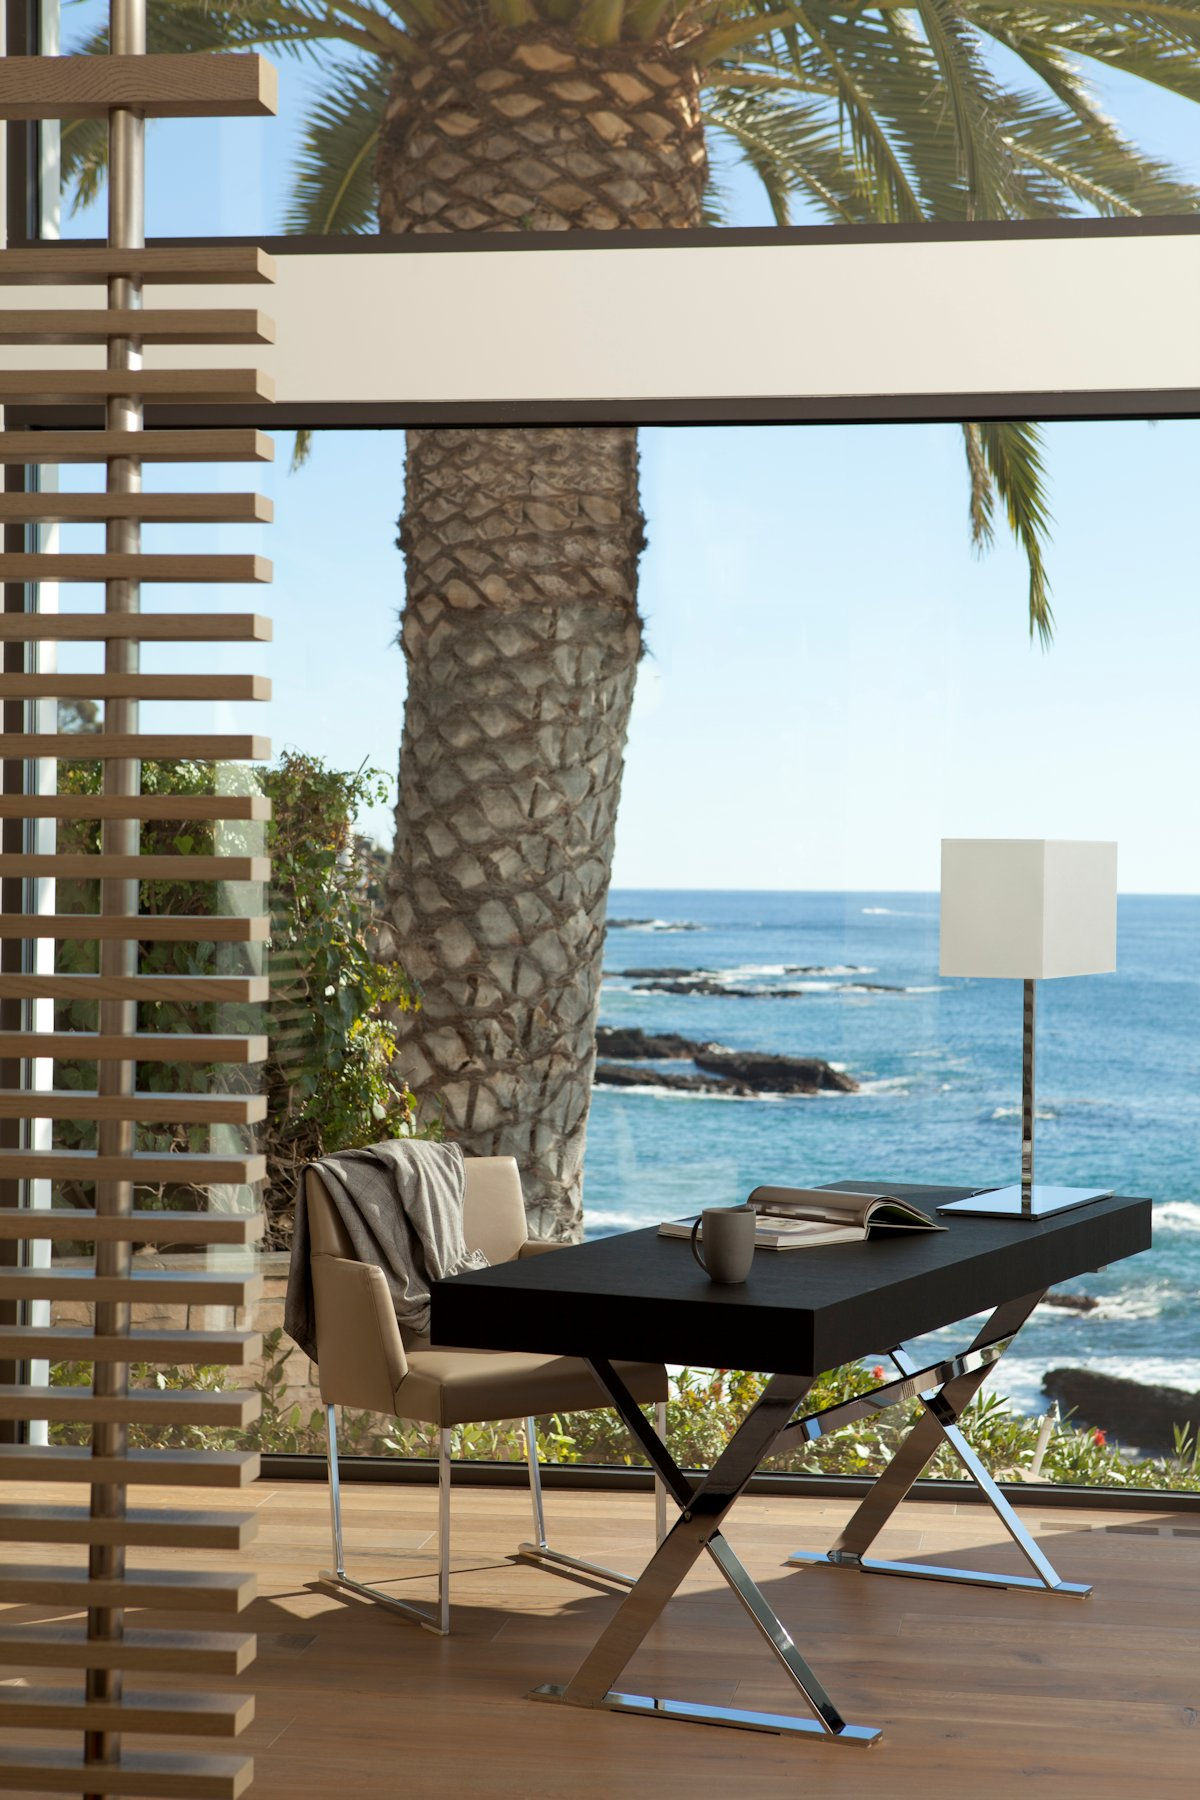 Office Table, Ocean Views, Beach House in Laguna Beach, California